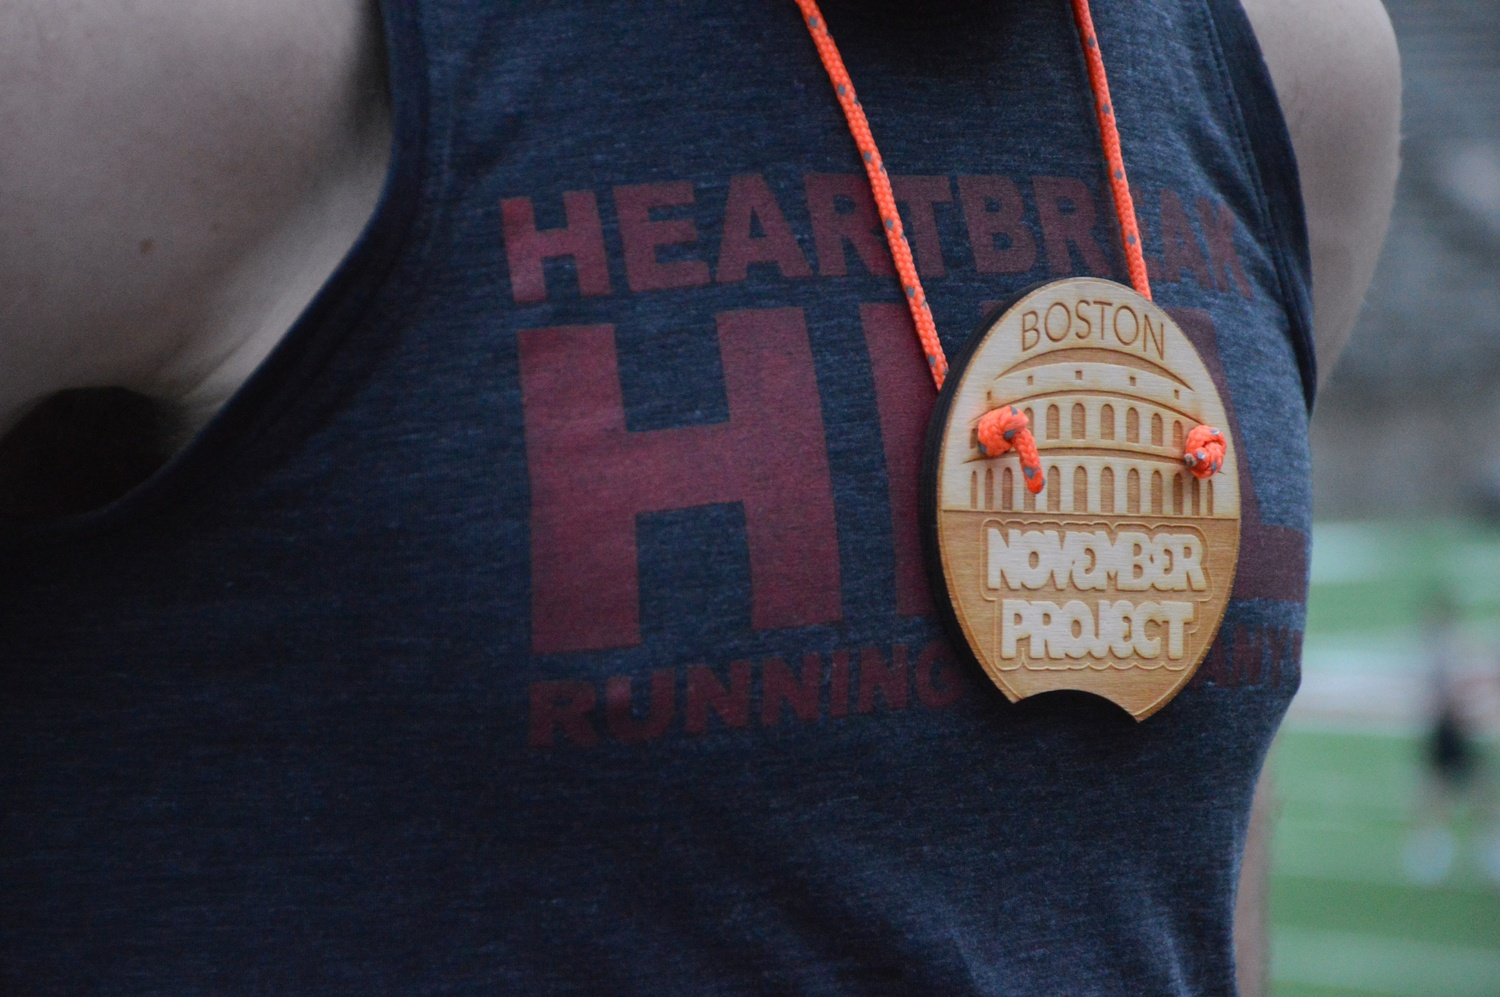 """Conor Hayden wears one of twelve """"NP High Five"""" medals.  According to Hayden, November Project participants pass the medals to other members """"as a way of recognizing someone who embodies what NP stands for."""